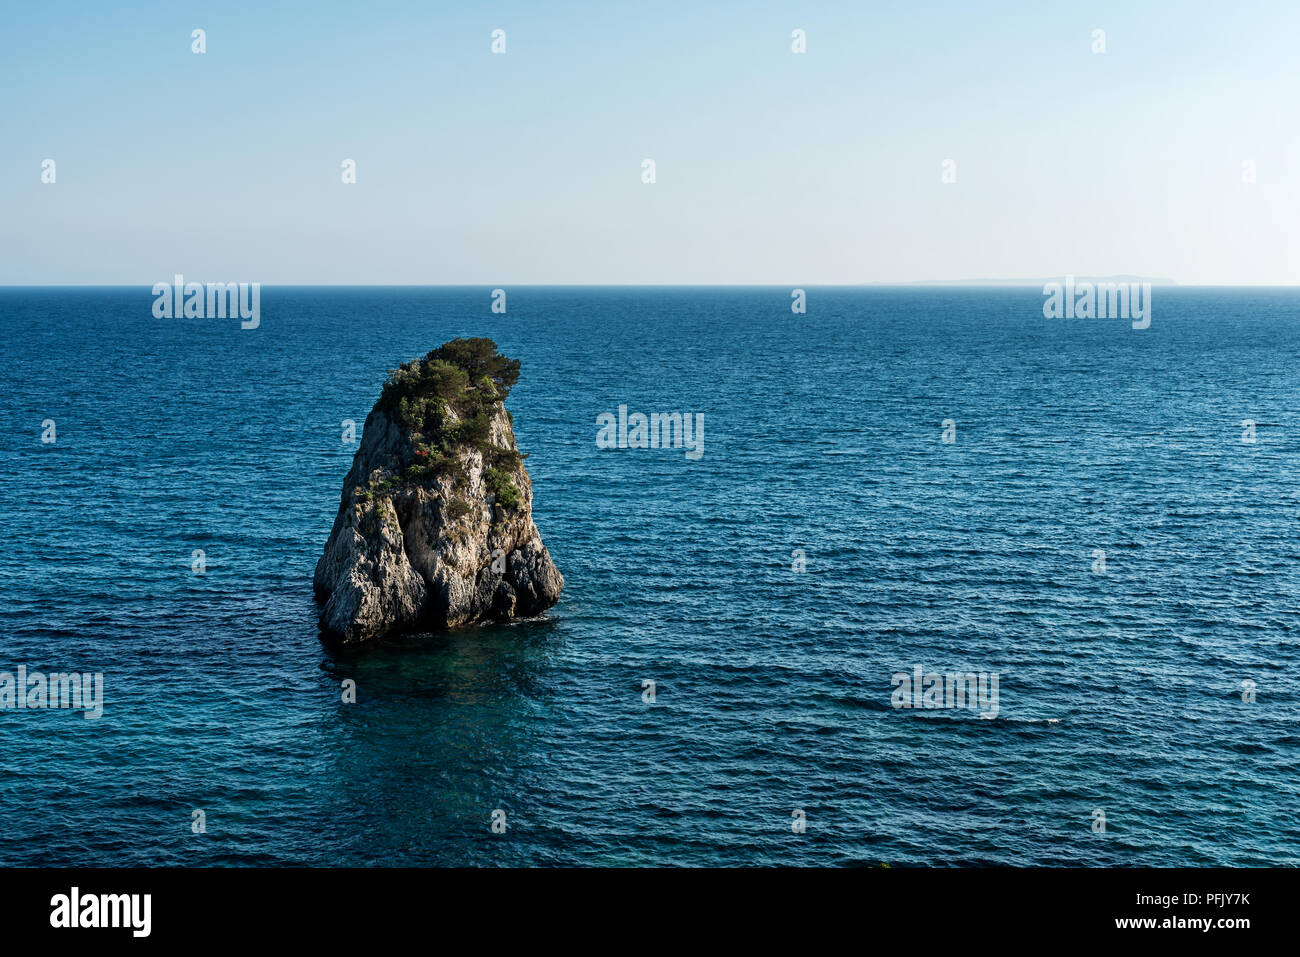 Lonely inhospitable uninhabited island in blue Ionian Sea in Greece - Stock Image